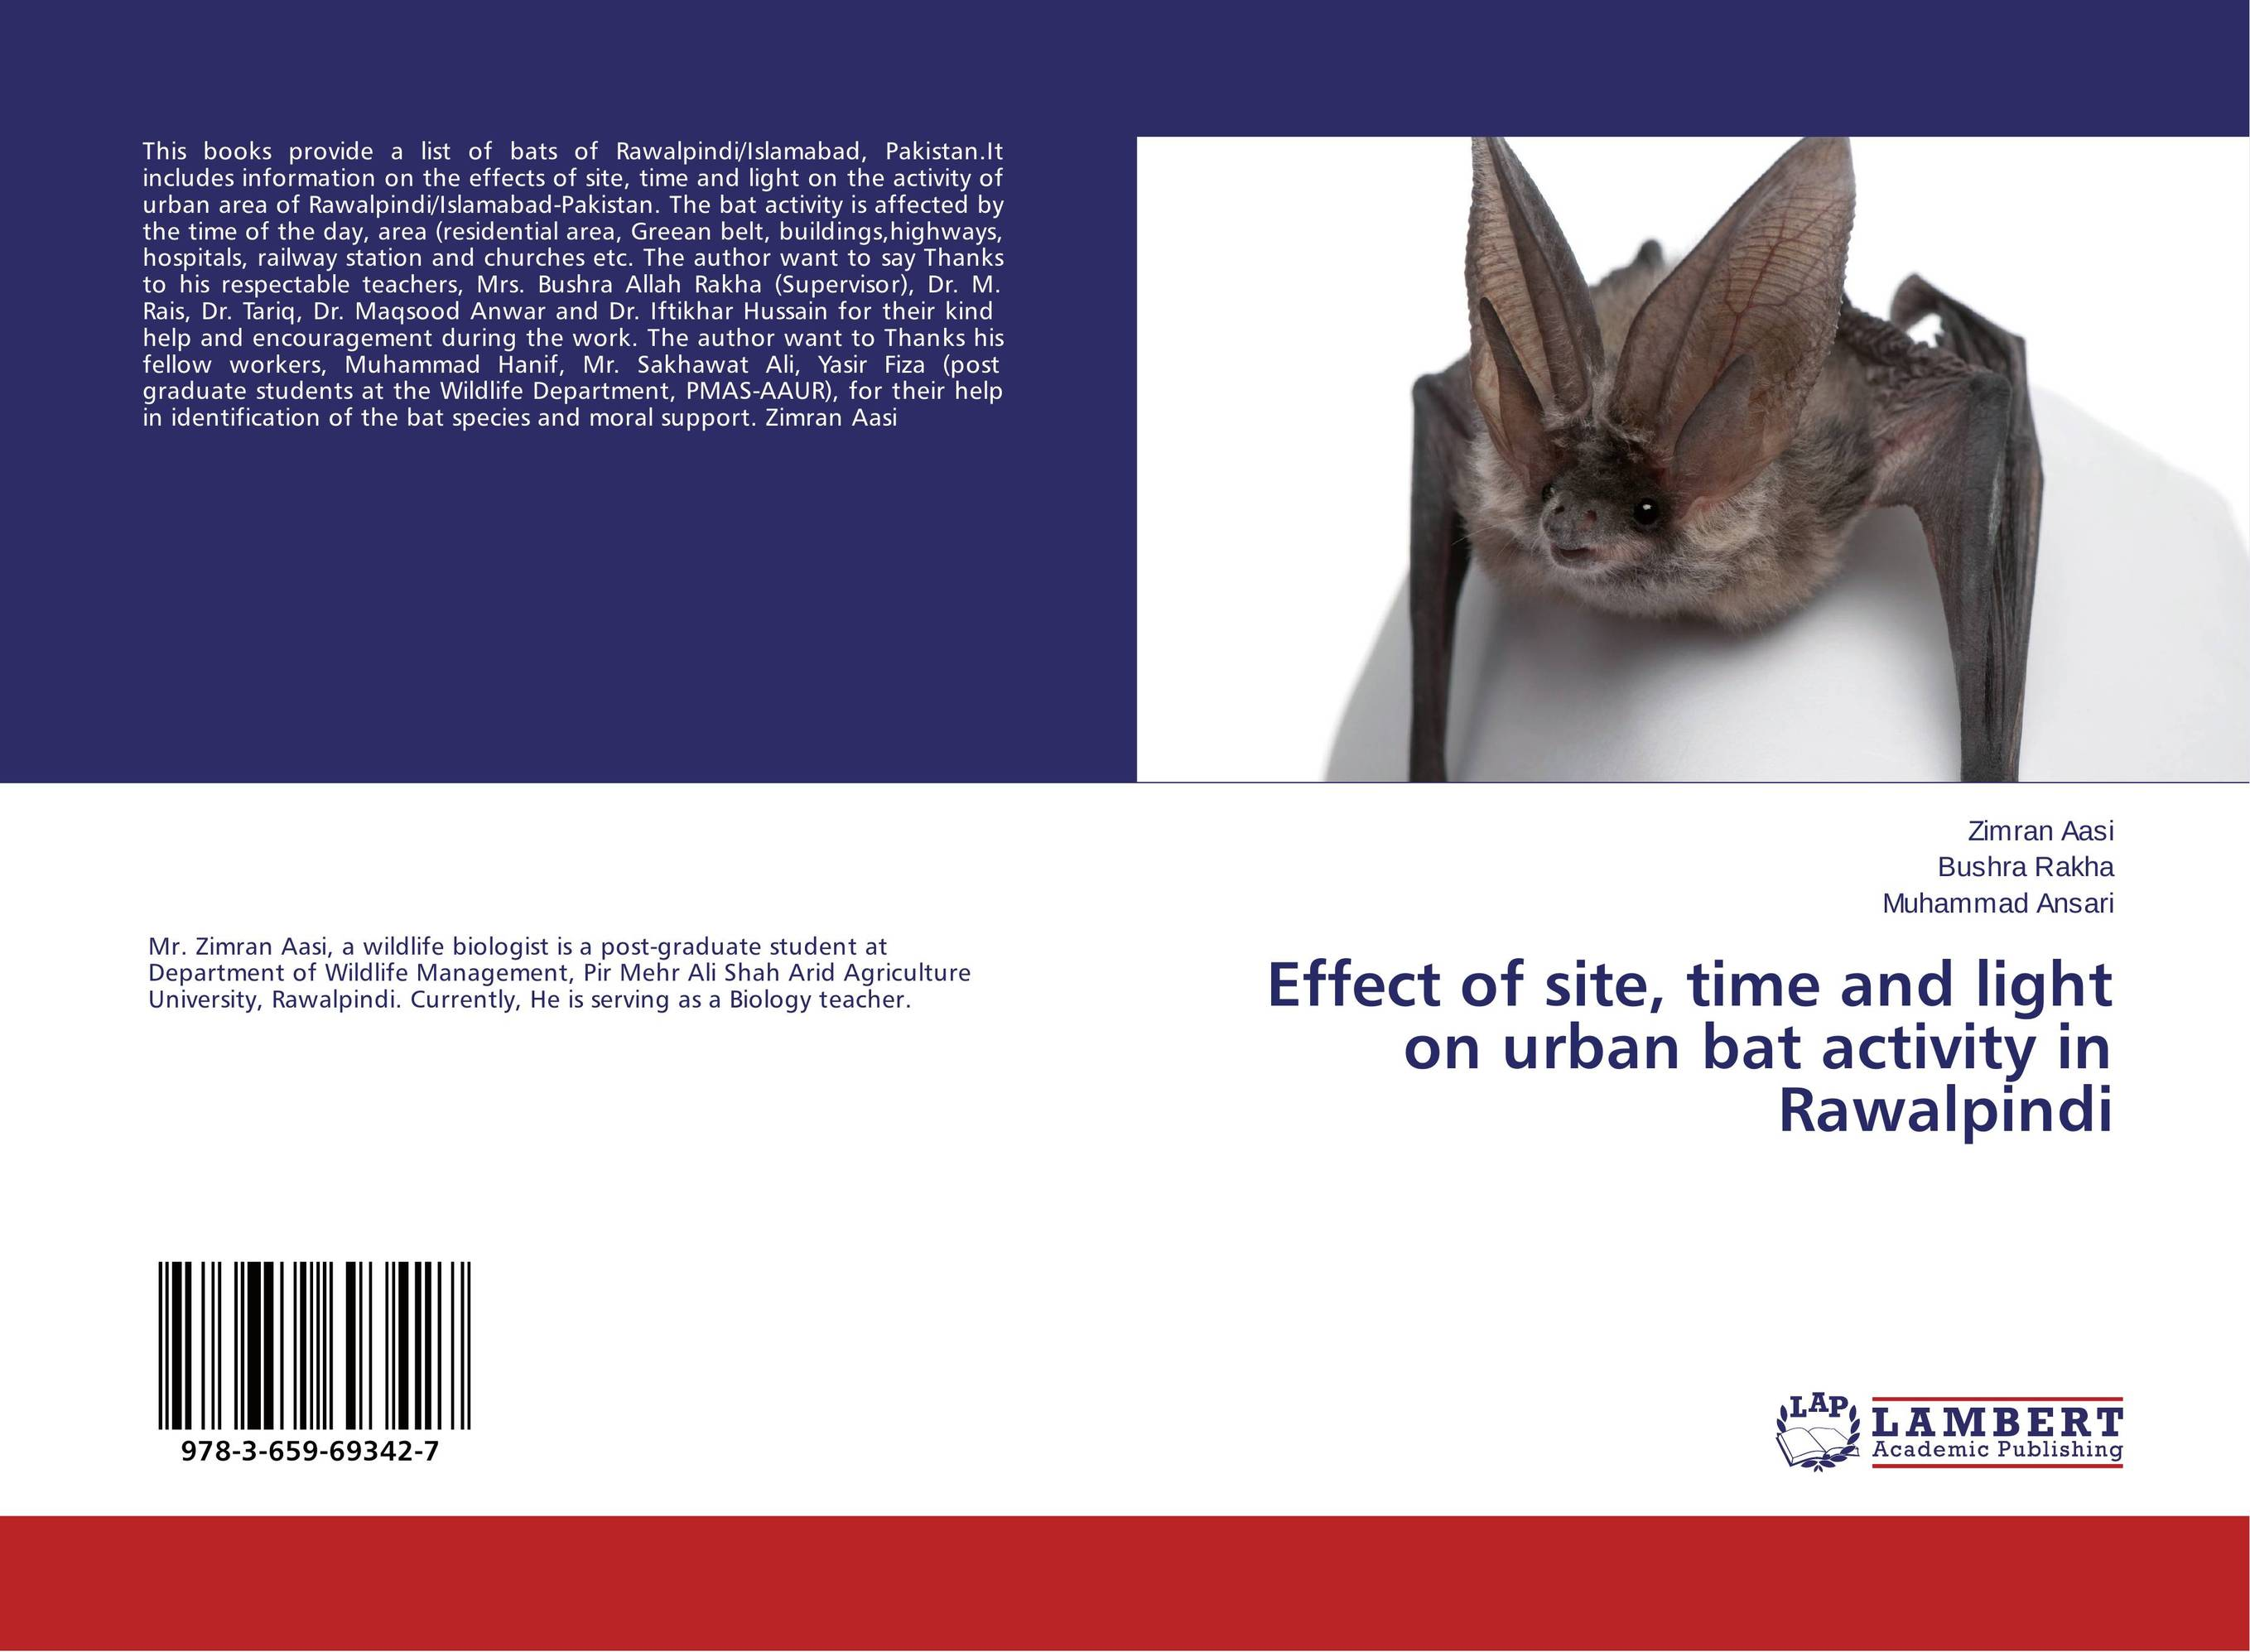 Effect of site, time and light on urban bat activity in Rawalpindi